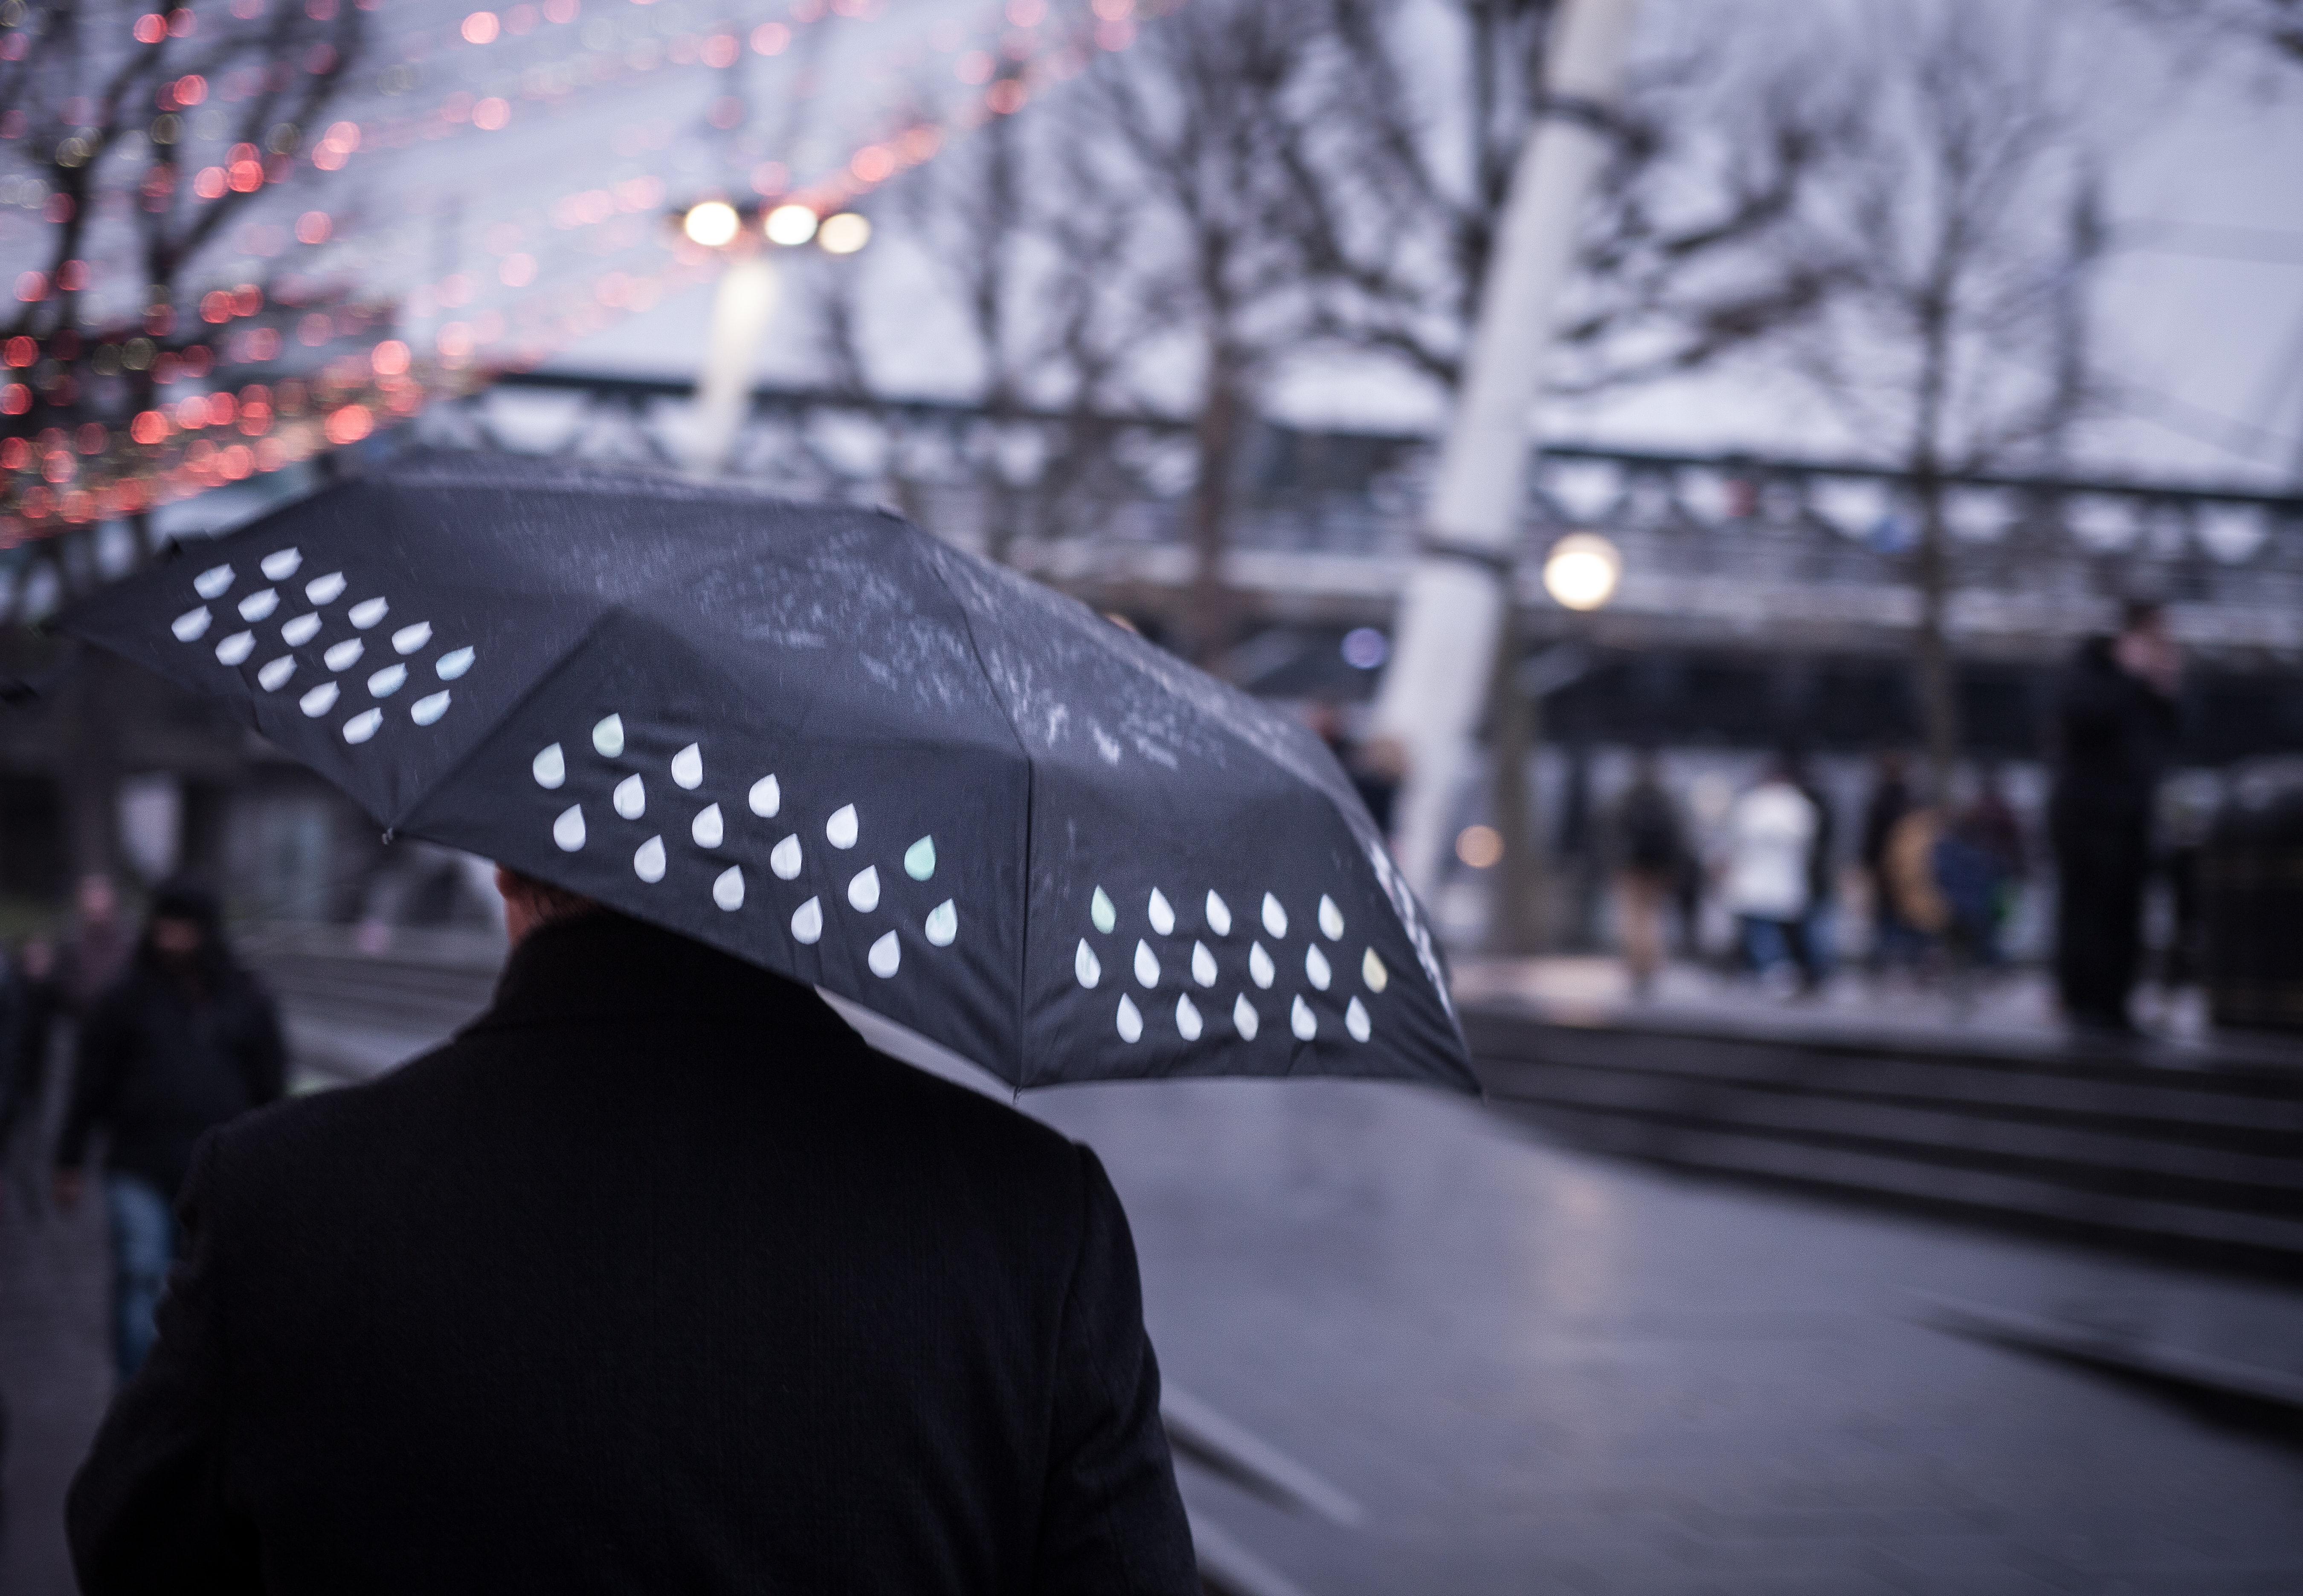 A blurry shot of a man with a wet black umbrella in London